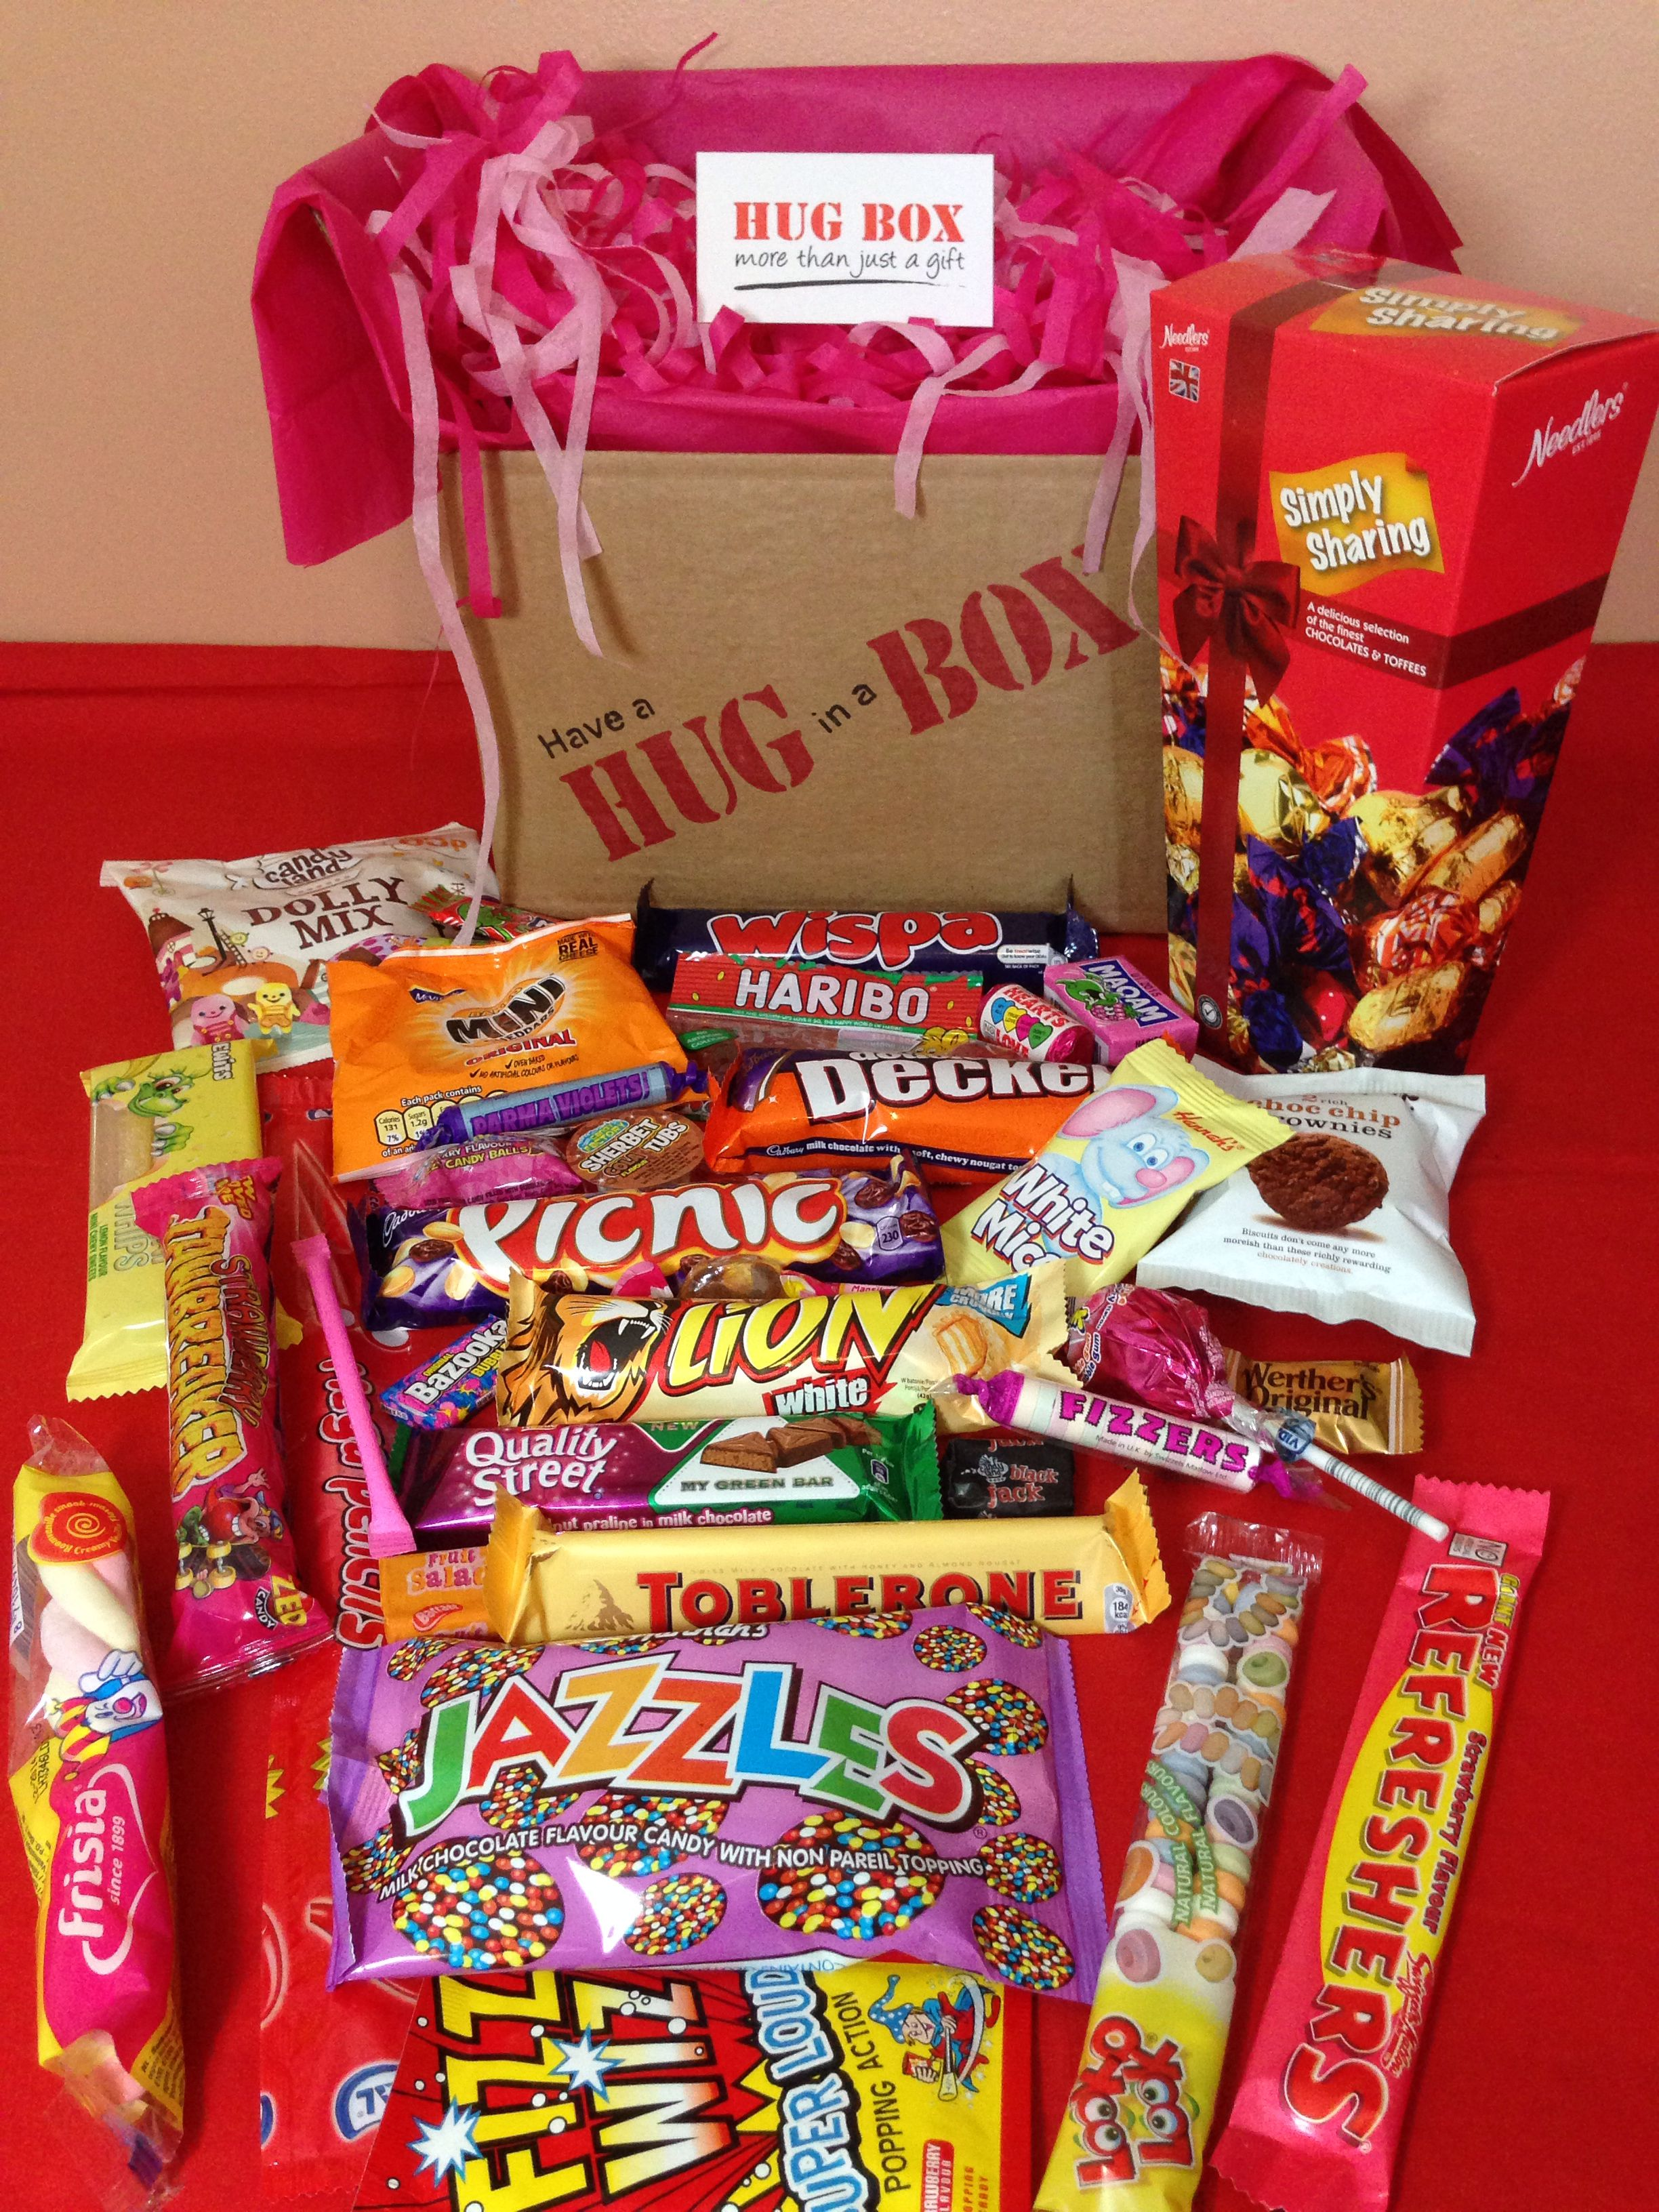 Have a HUG in a BOX delivered to someone special! ) £14